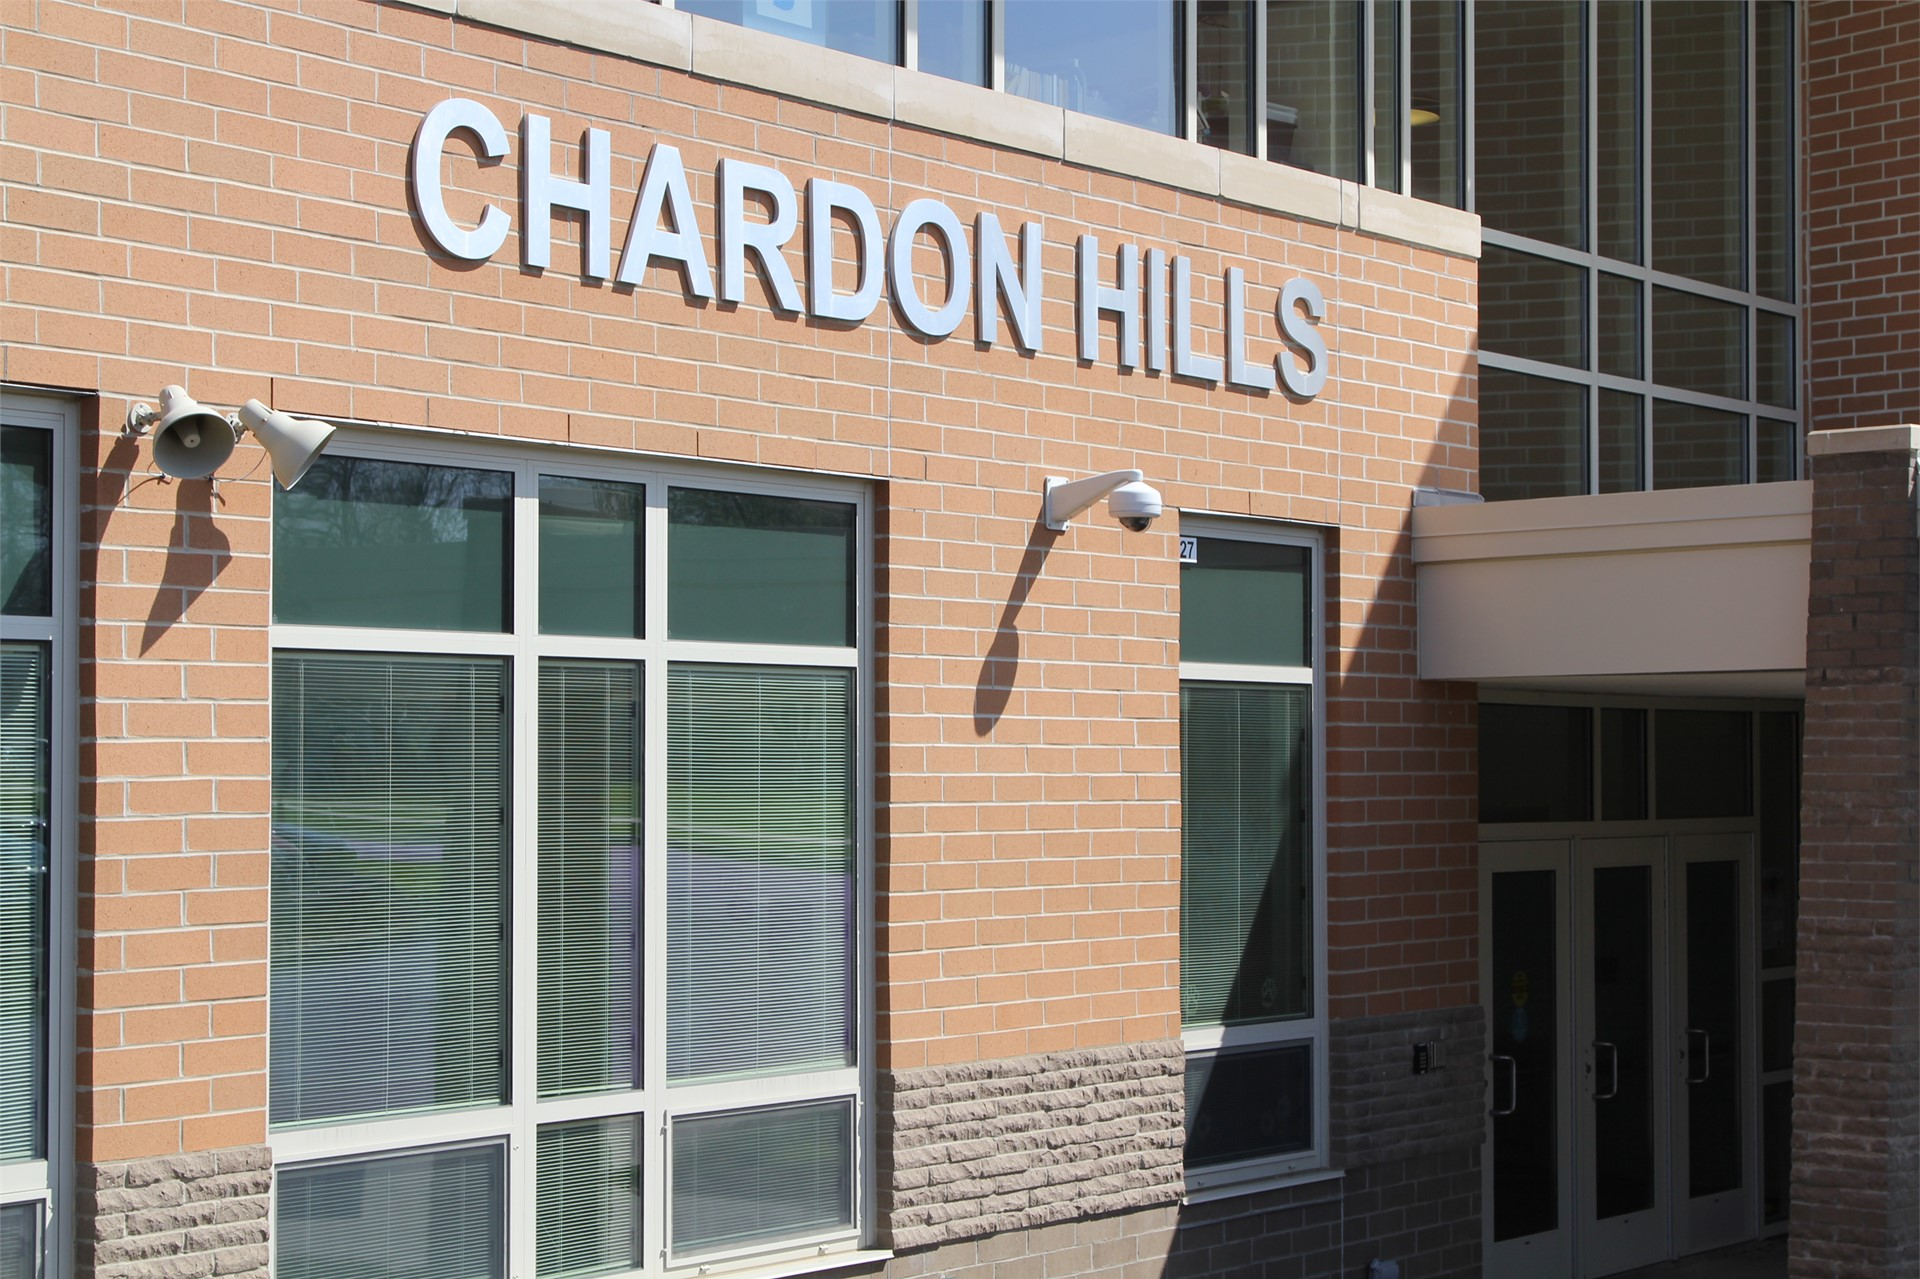 Chardon Hills building entrance